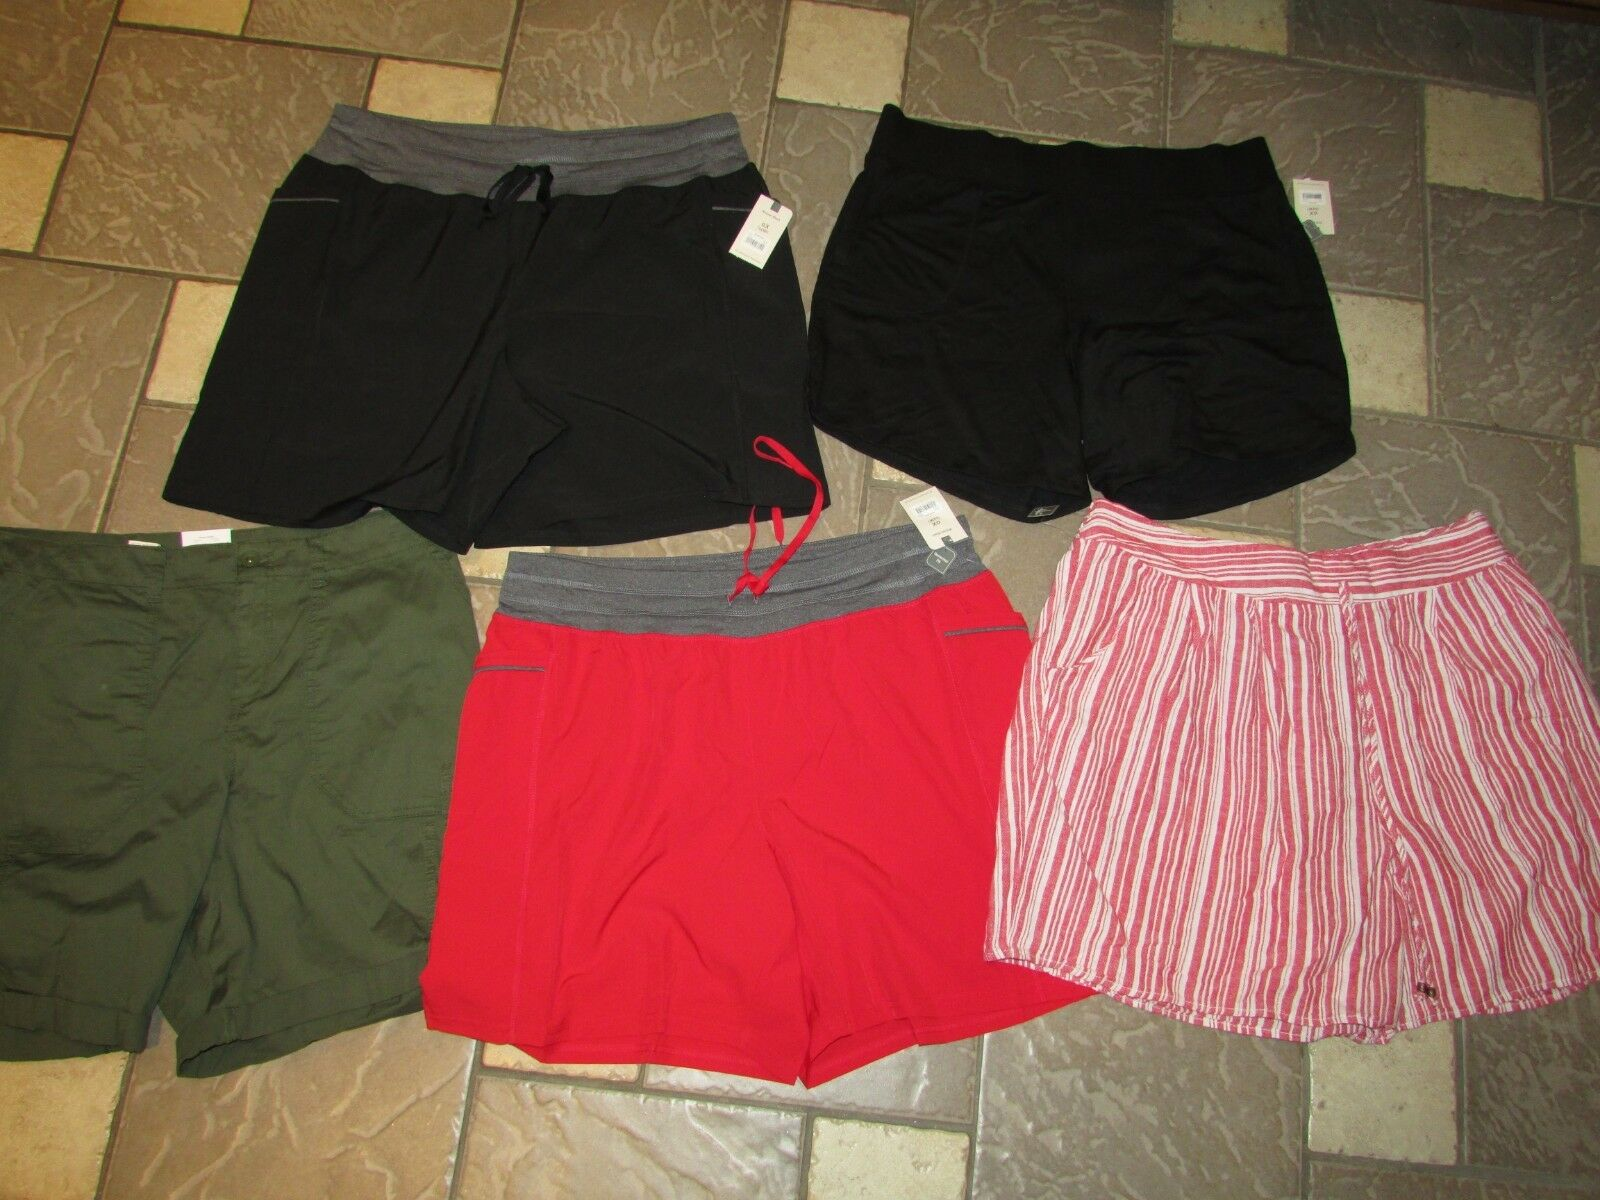 NEW LOT 5 SHORTS WOMENS 0X 14-16 MULTICOLOR LOT WOMENS SHORTS TERRA & SKY